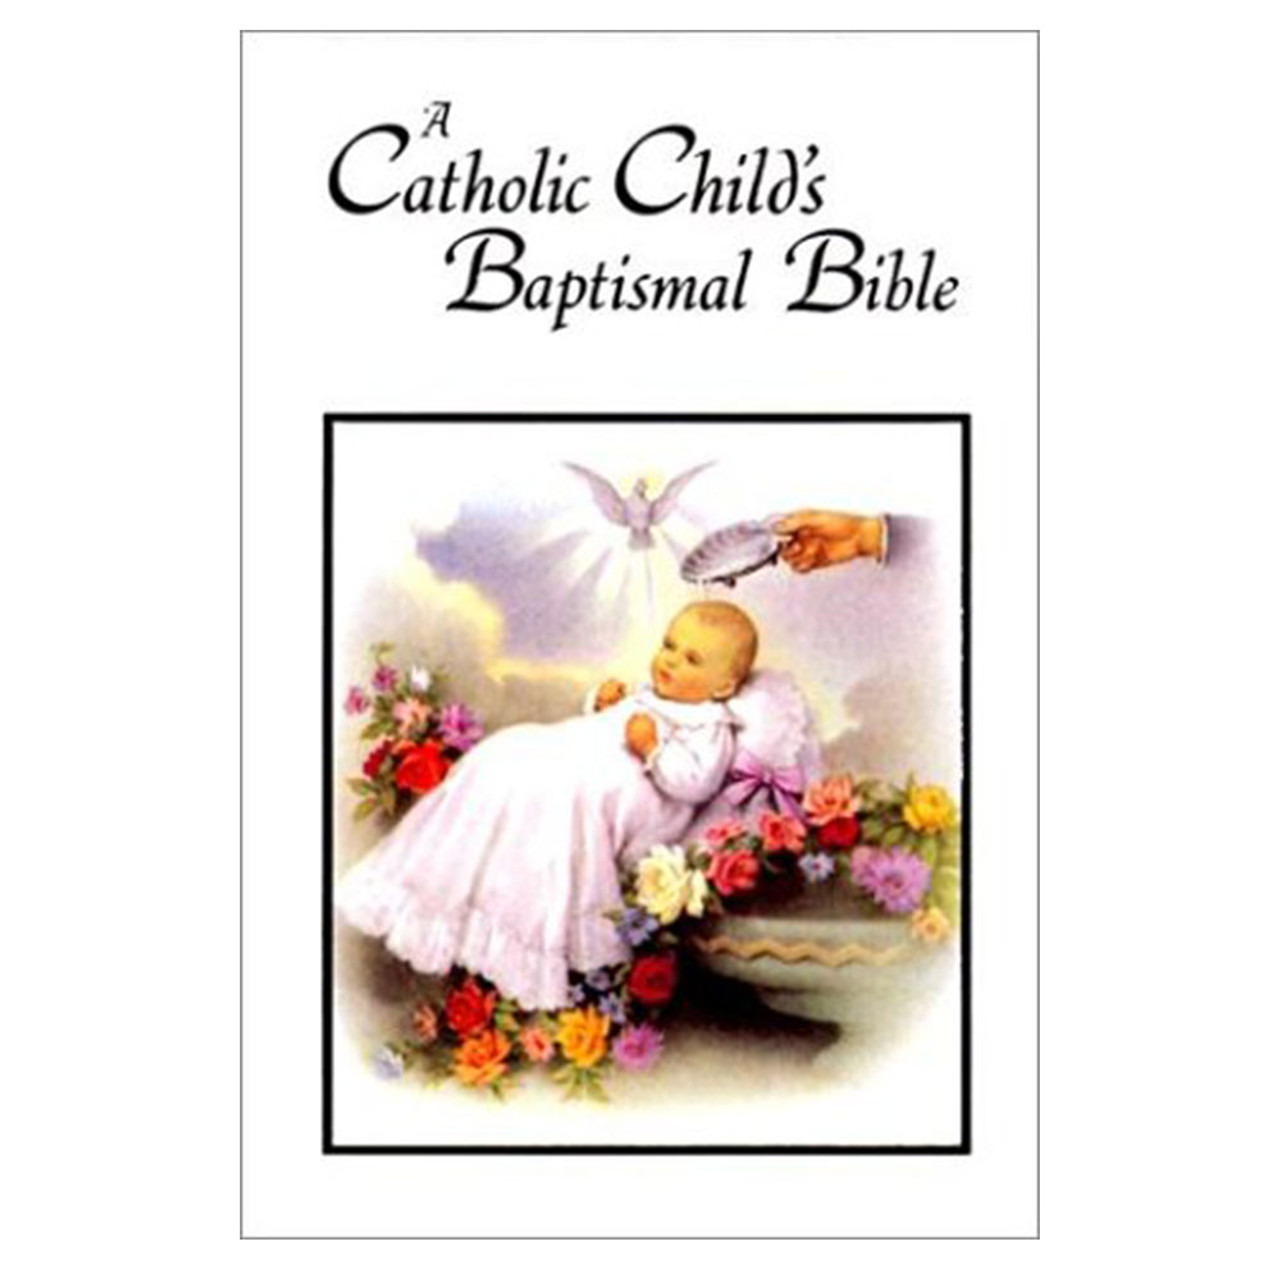 Catholic Child's Baptismal Bible